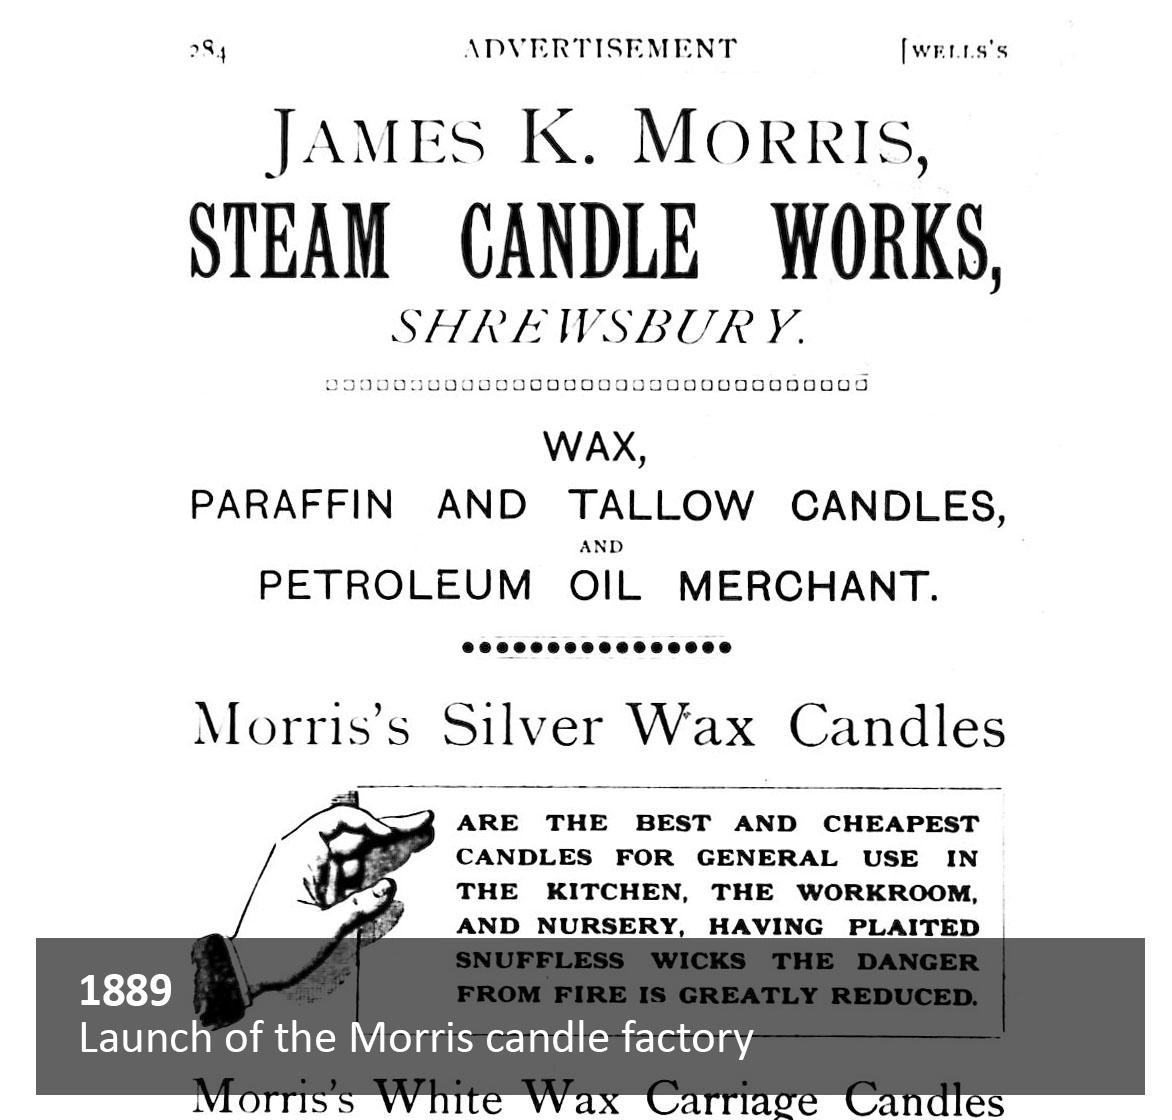 Launch of the Morris candle factory